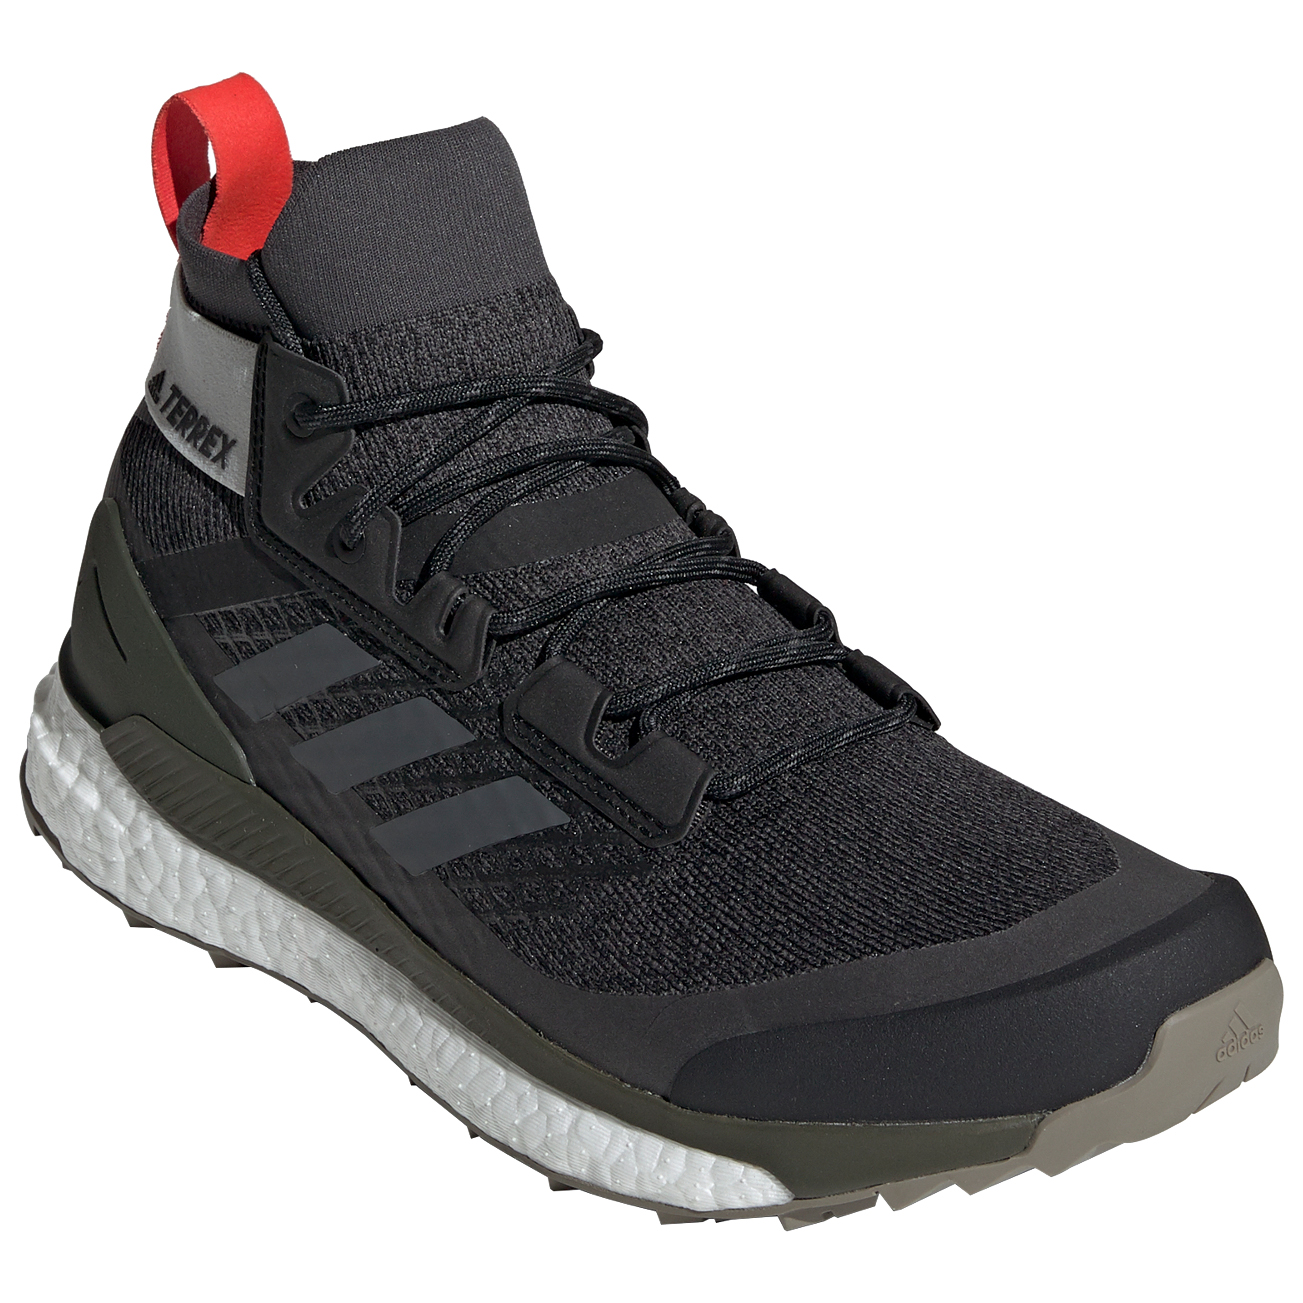 detailed images order quality design Adidas Terrex Free Hiker - Walking boots Men's | Free EU Delivery ...